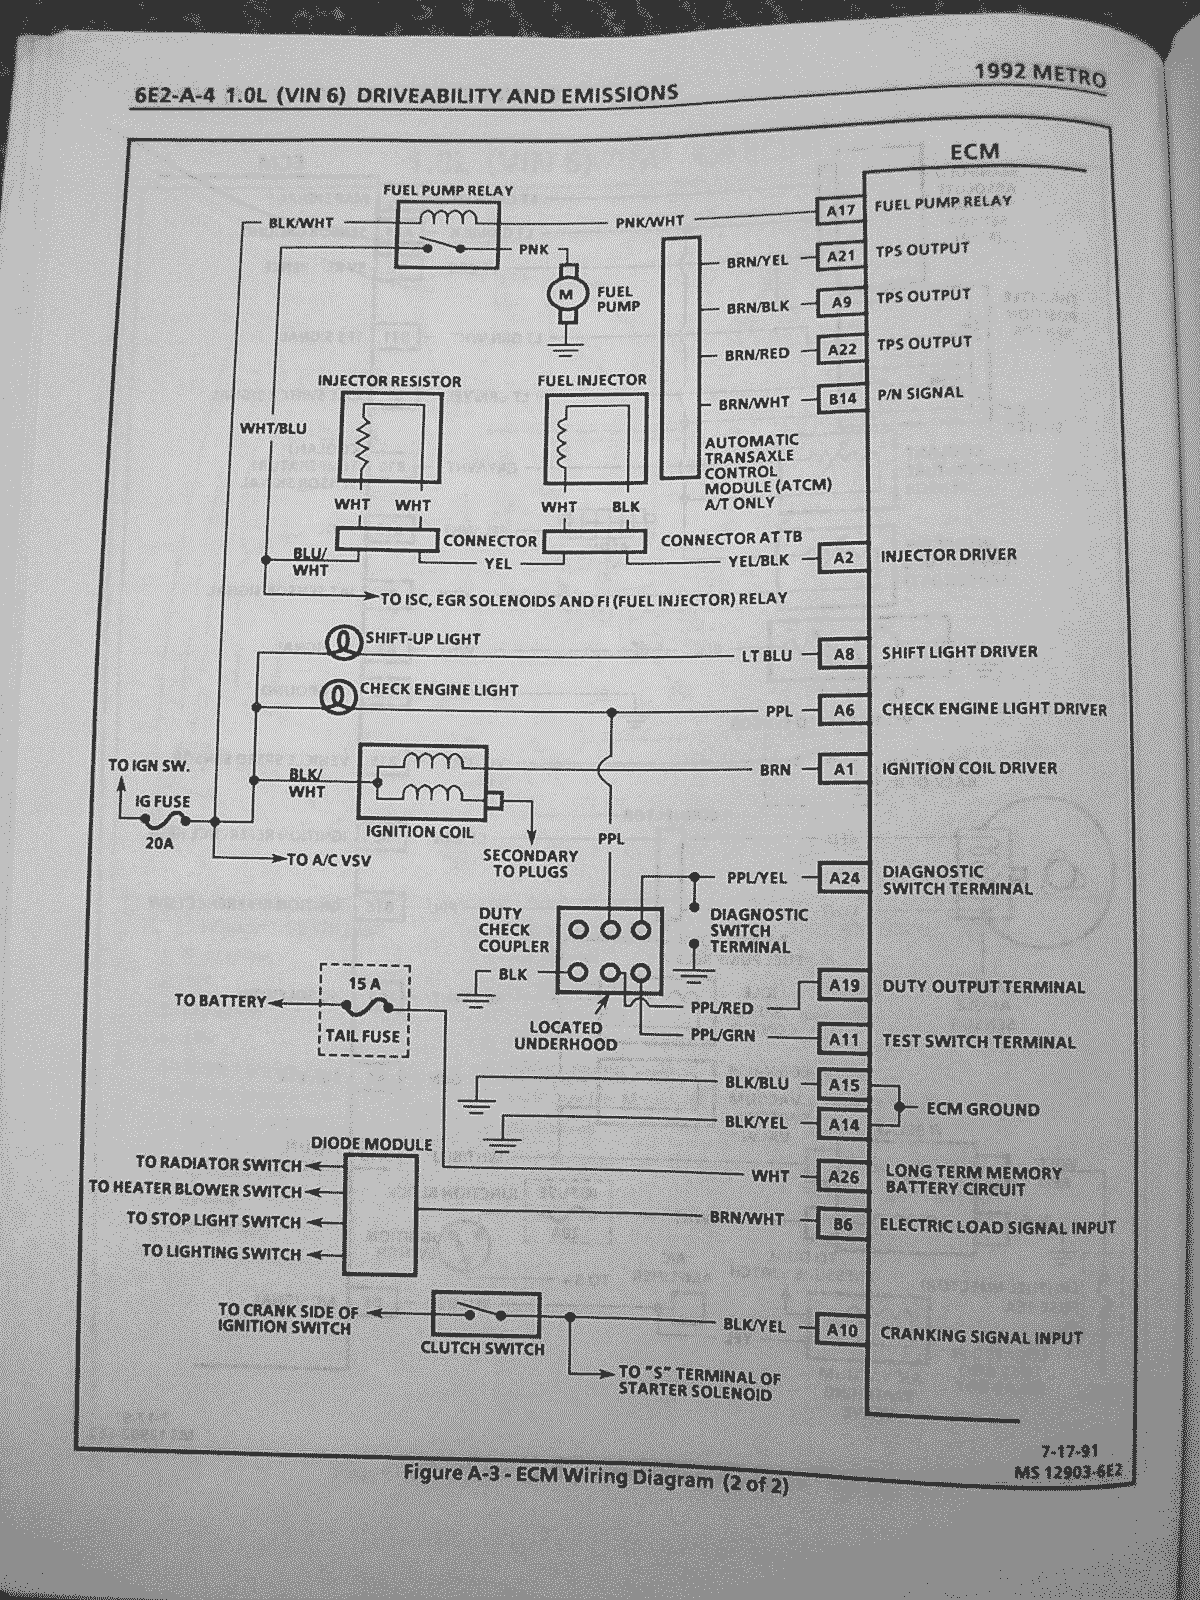 Geo Metro and Suzuki Swift Wiring Diagrams – MetroXFi.com